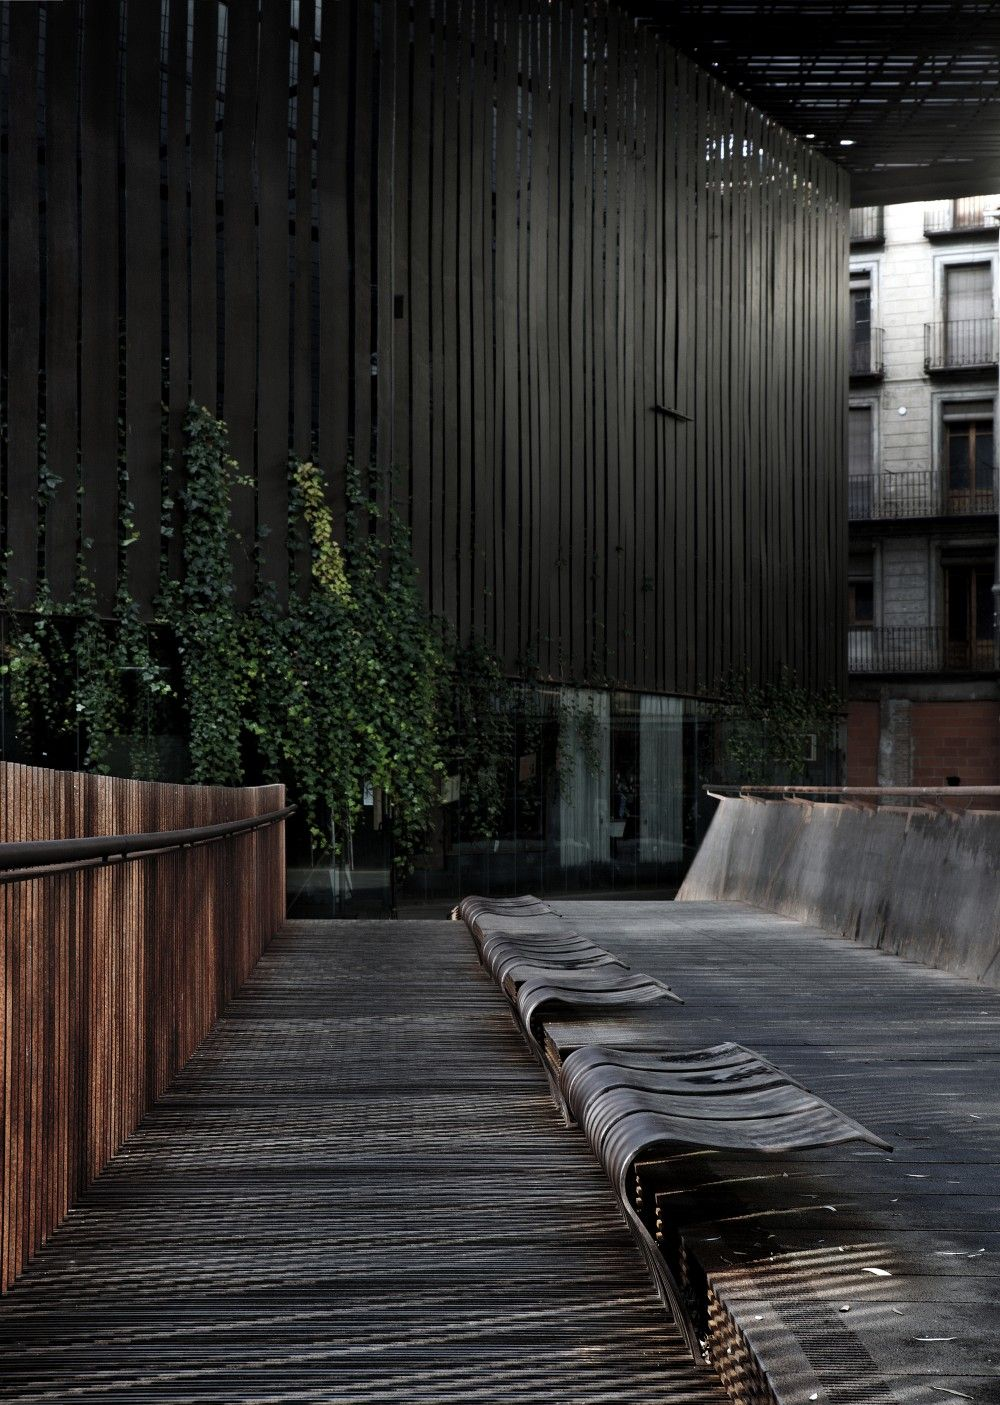 Public theatre ripoll girona spain by rcr arquitectes - Arquitectura girona ...